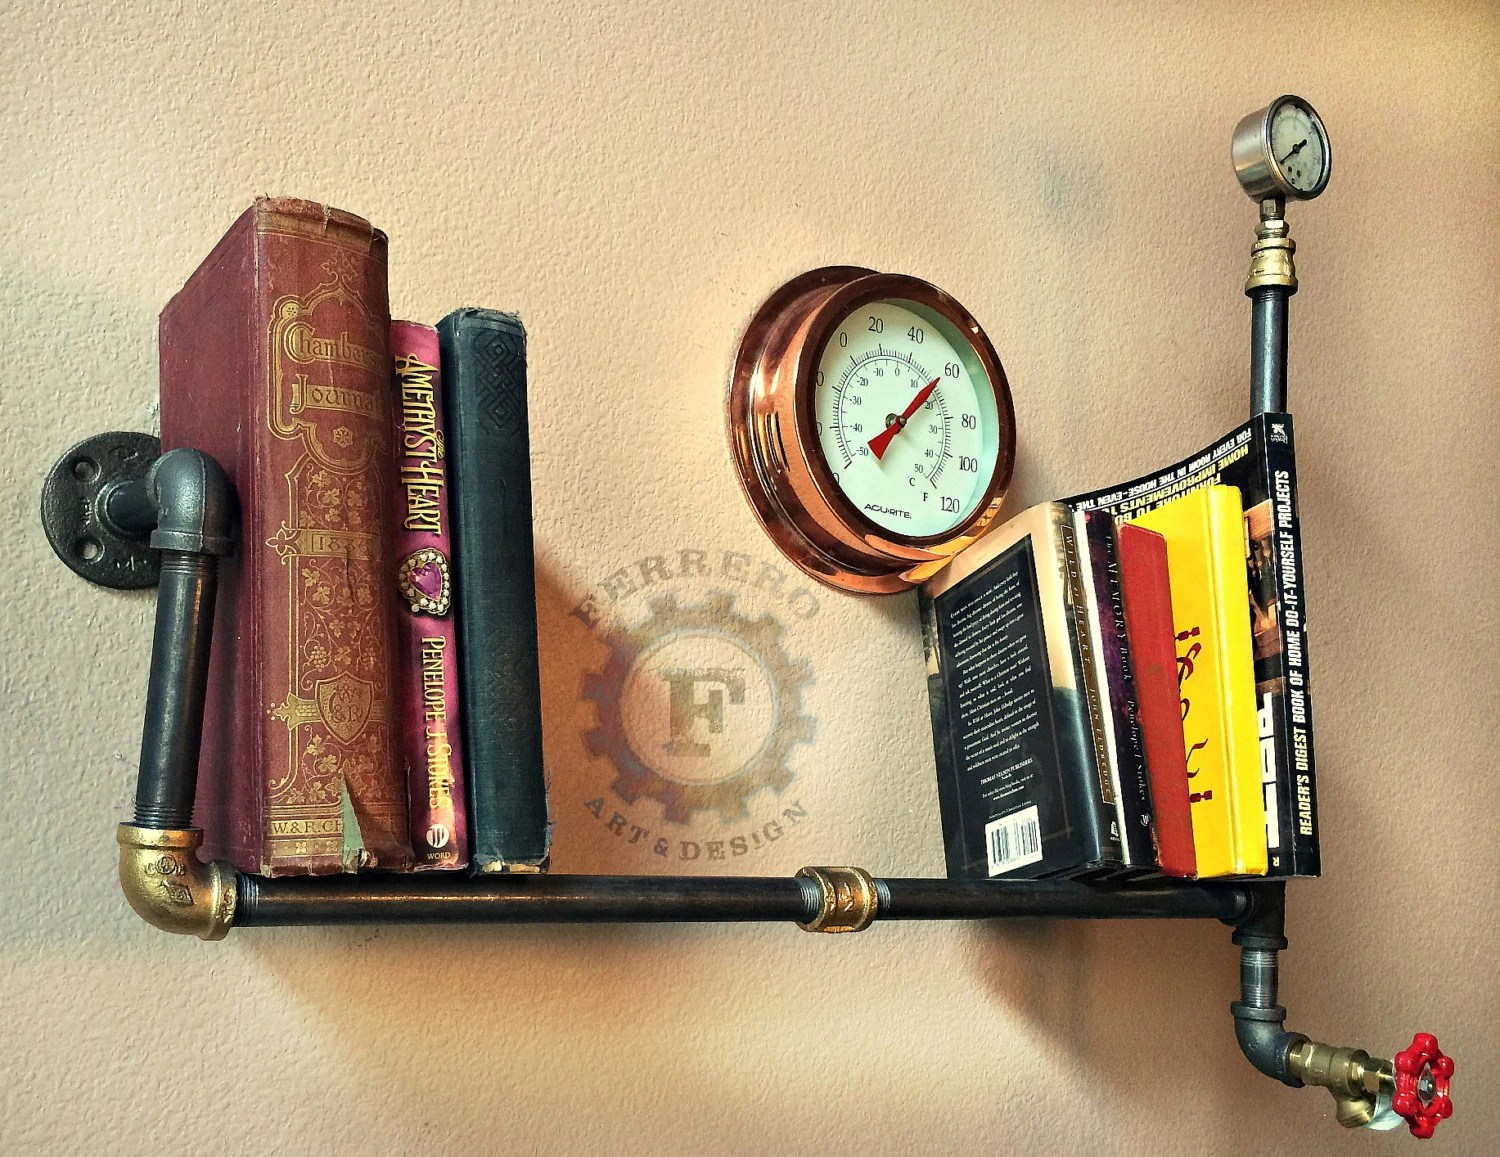 Steampunk Wall Shelves Wall Shelf Wall Decor Steampunk Shelf Industrial Decor